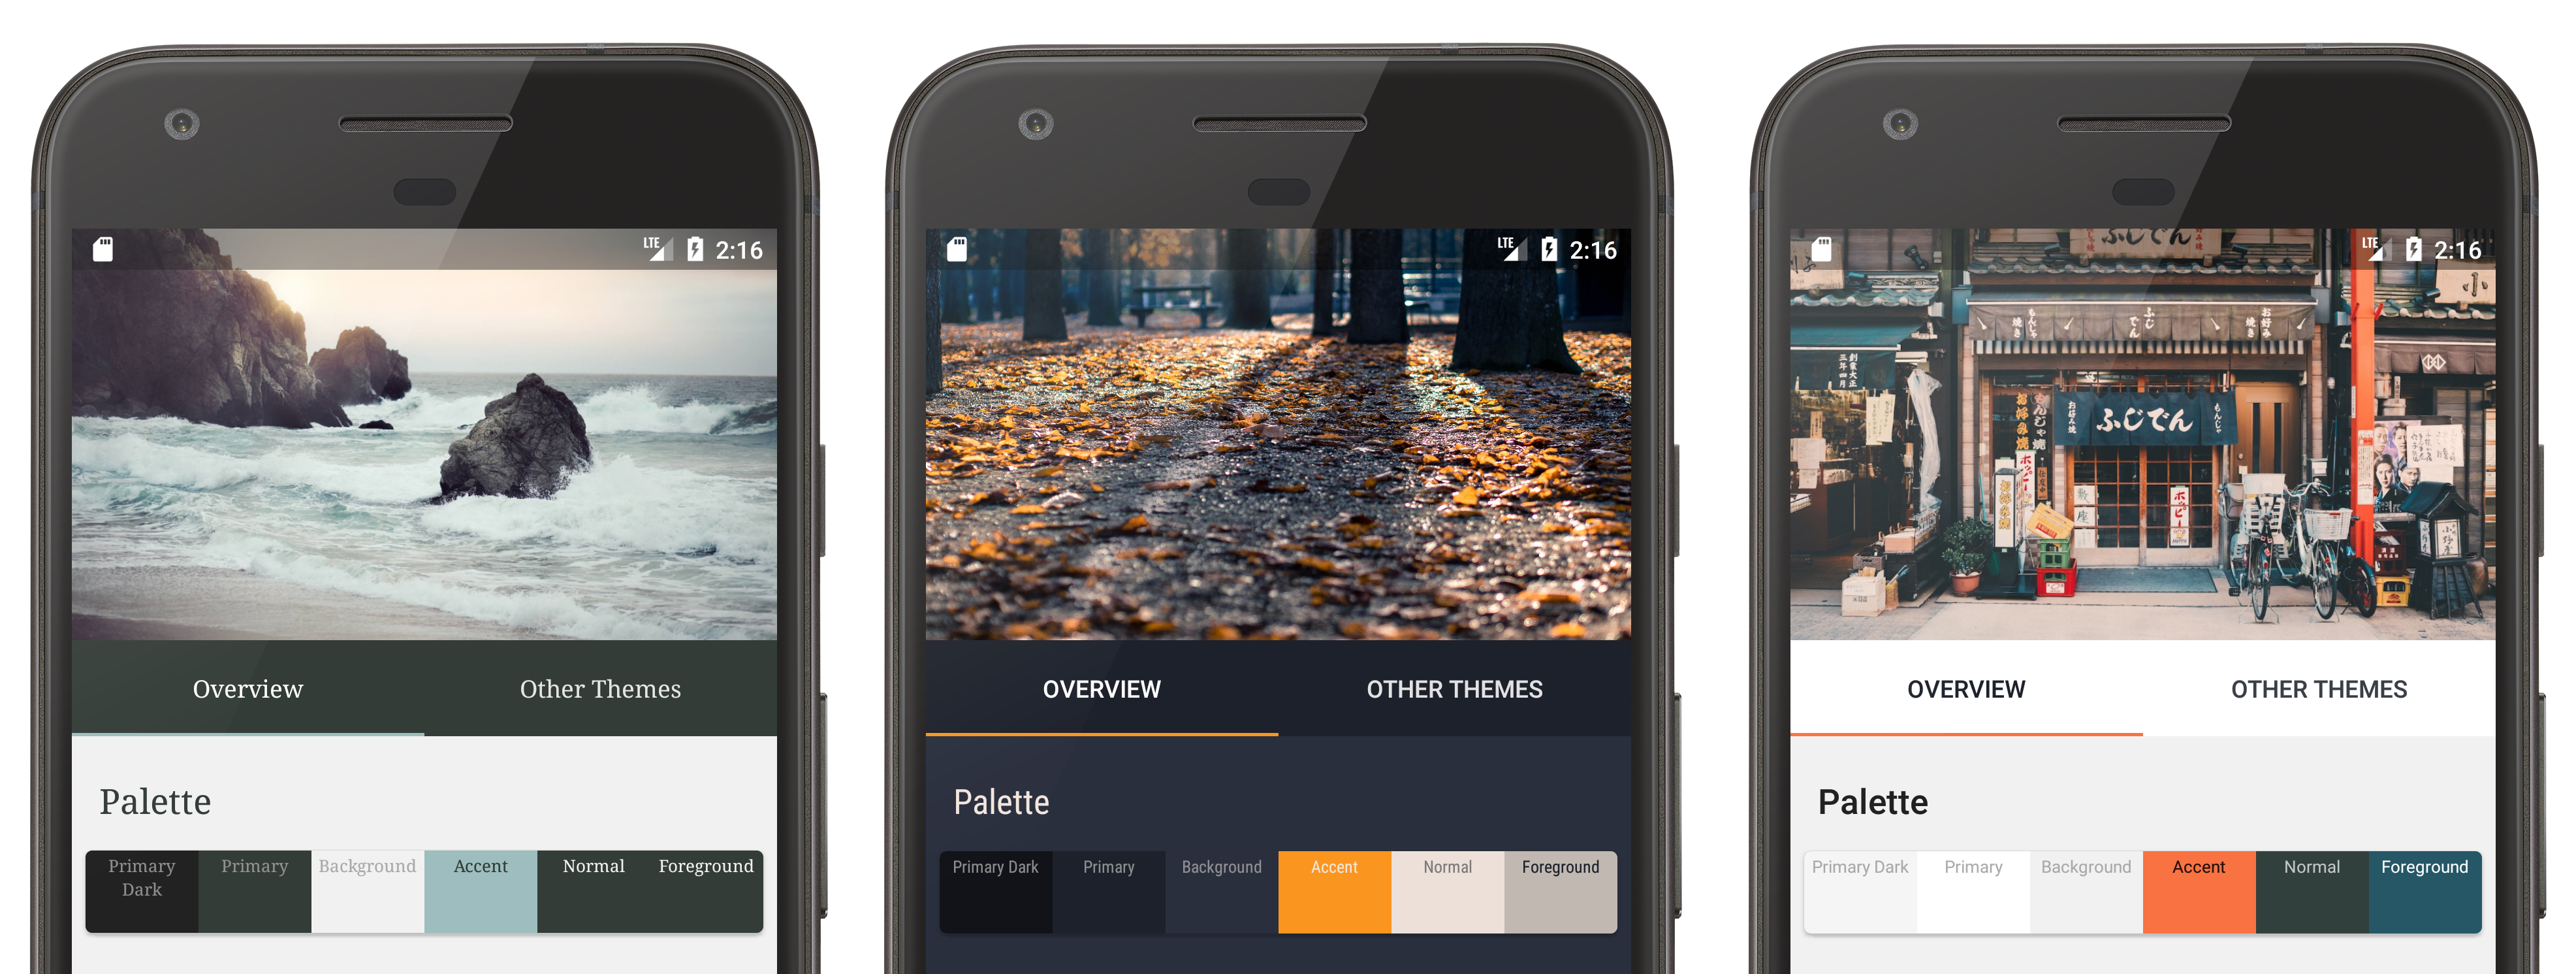 Android: Working with themes and styles - Joanne Kao - Medium